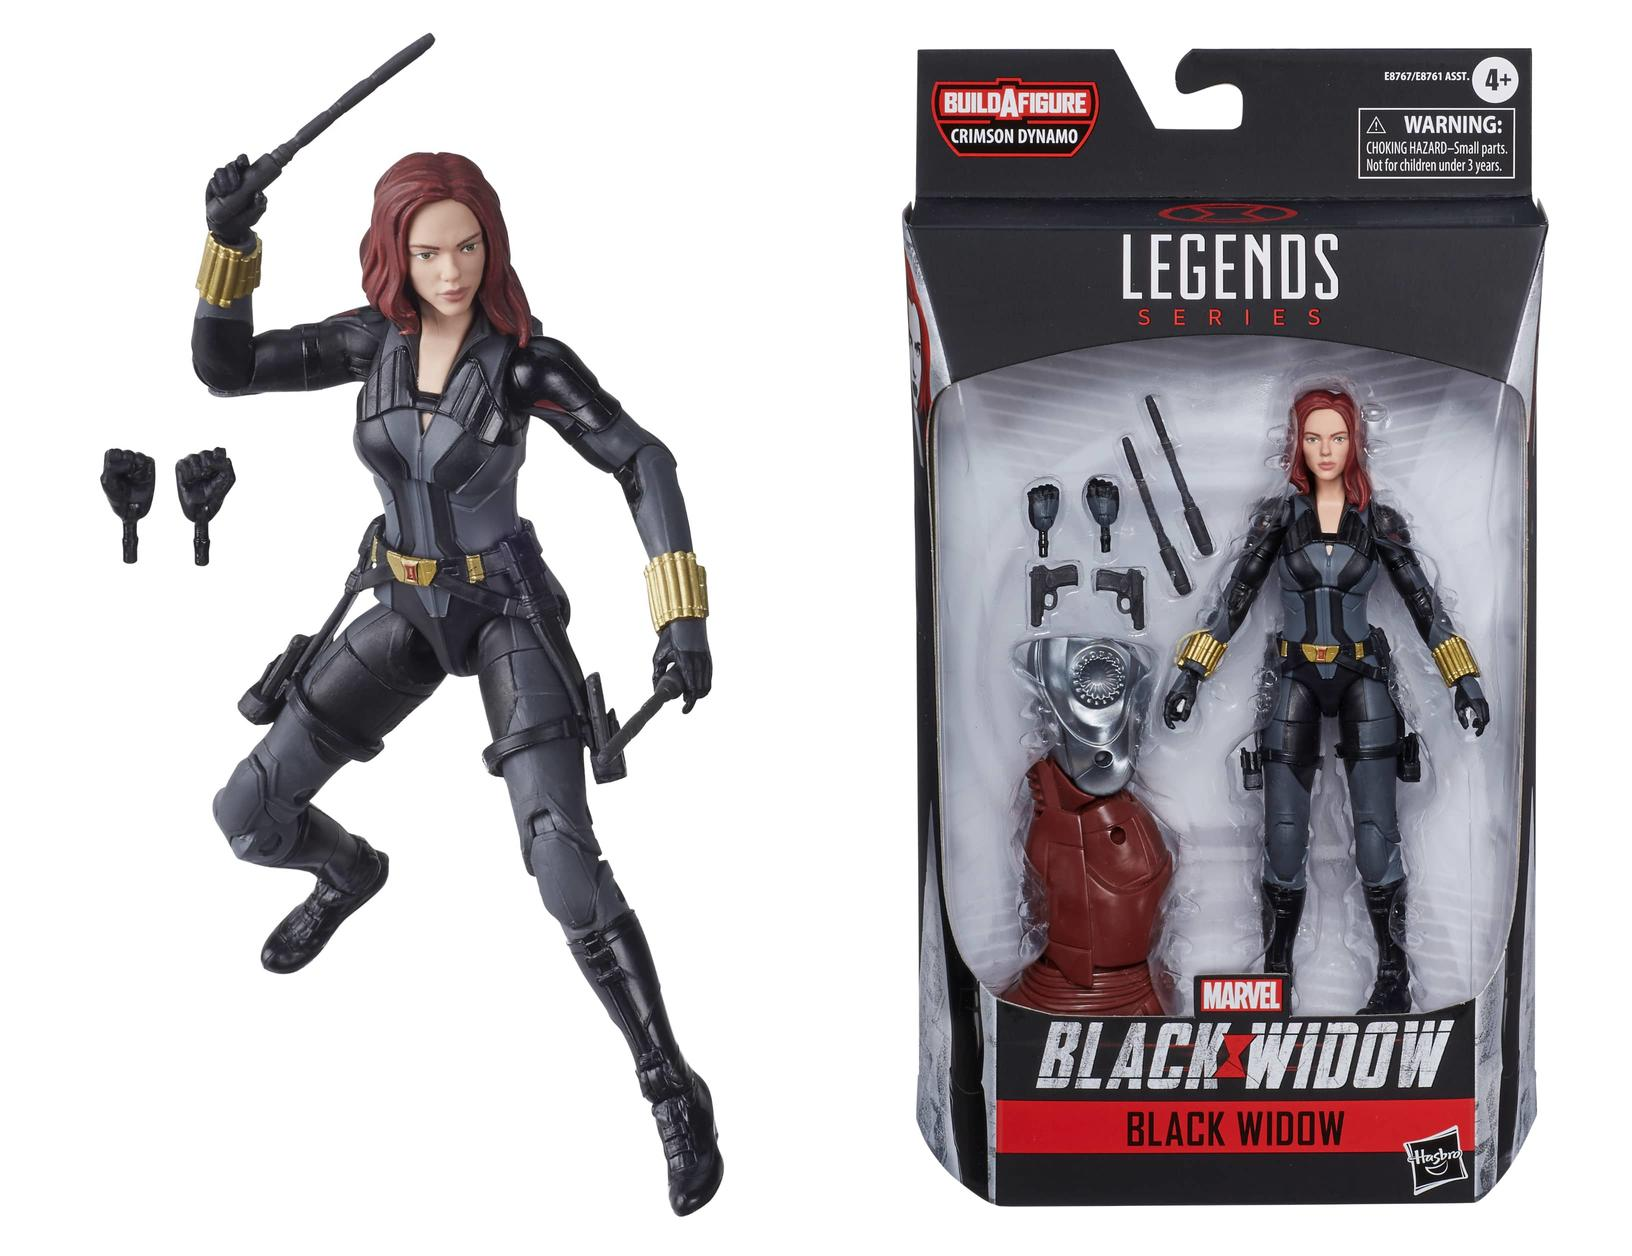 Hasbro Reveals Its Brand New Legends Series For Marvel